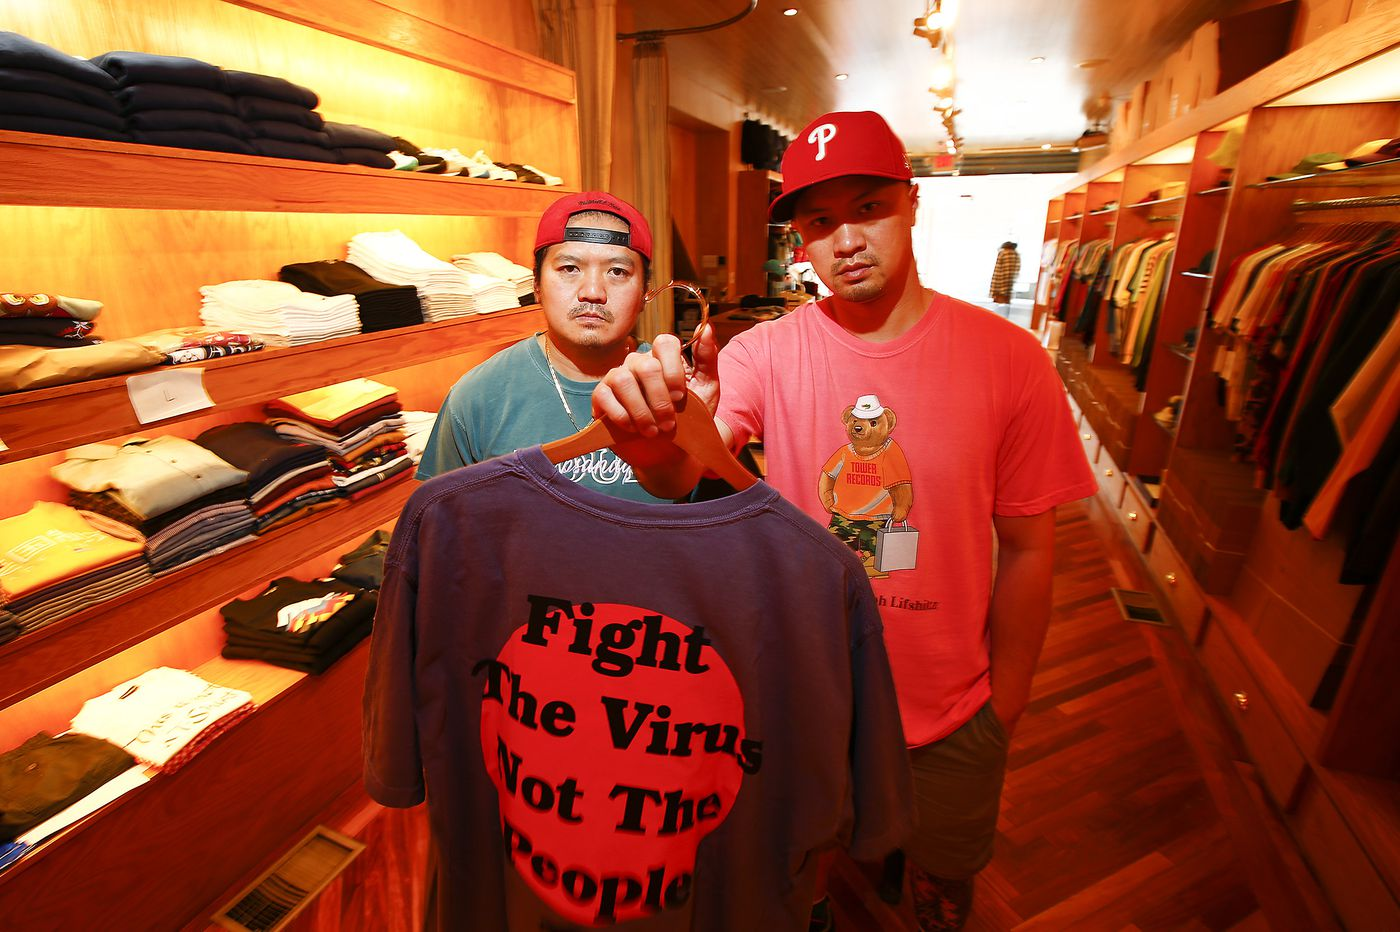 'We had to speak up' these Philly streetwear pioneers say of their Fight The Virus Not The People project | We The People